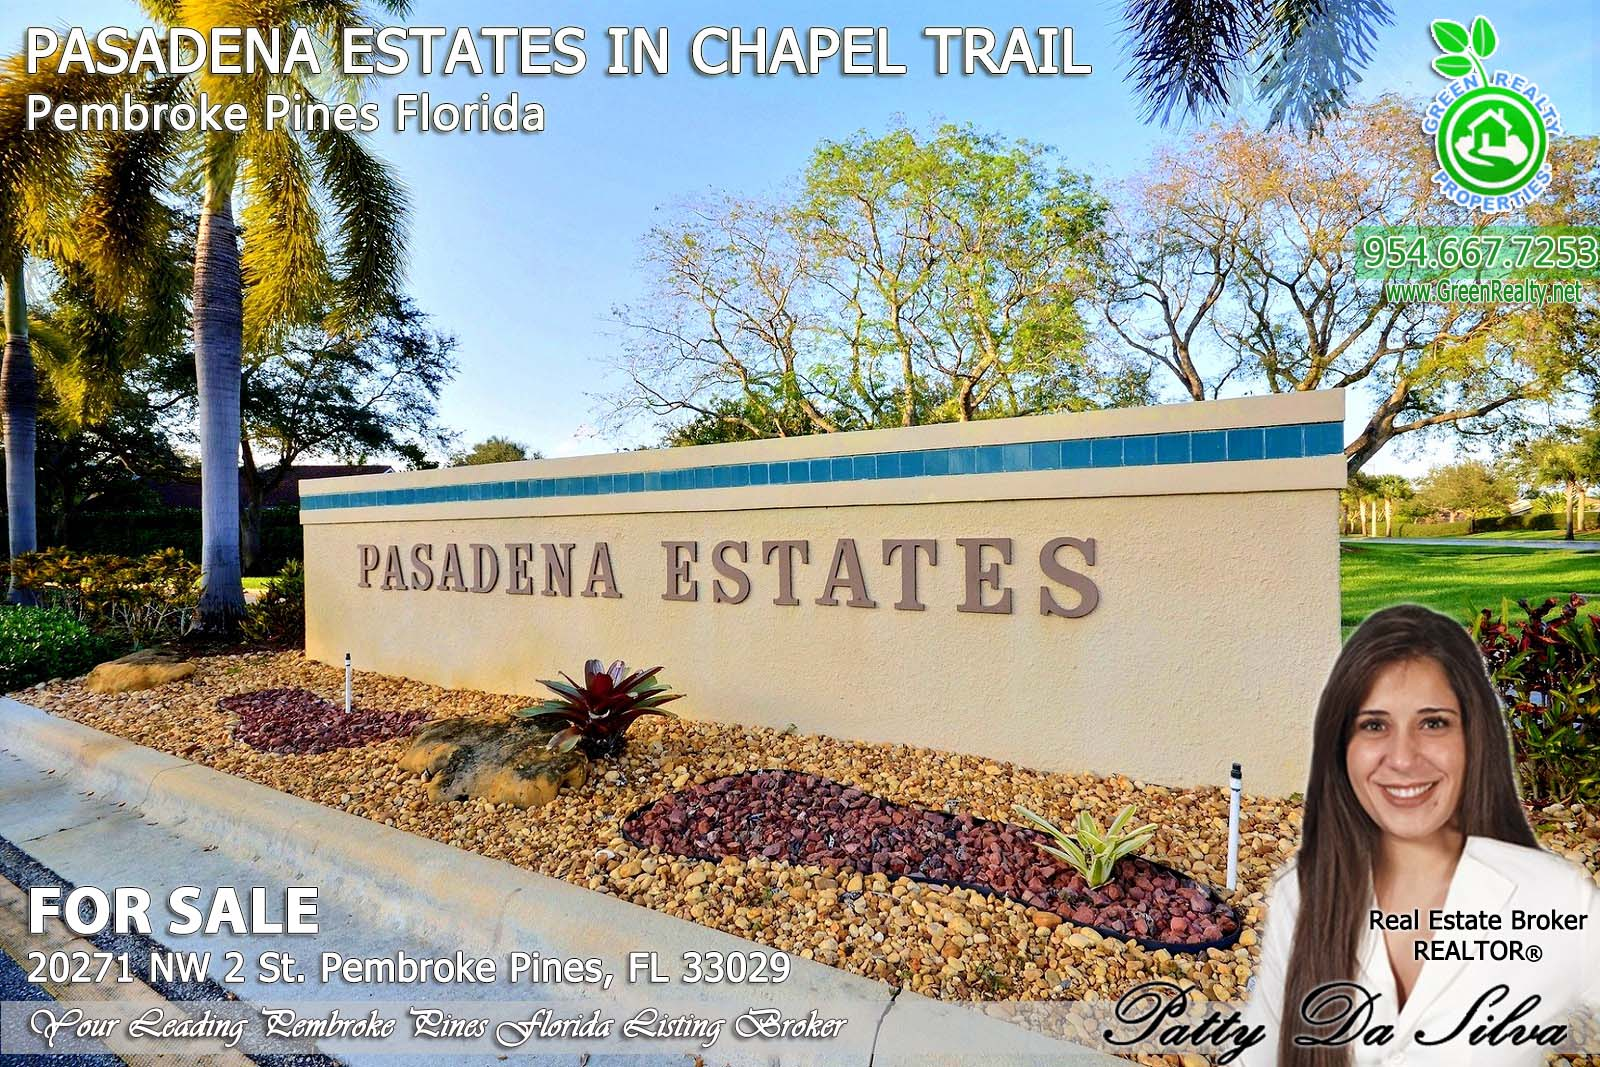 Pasadena Estates of Chapel Trail - Pembroke Pines FL sell home